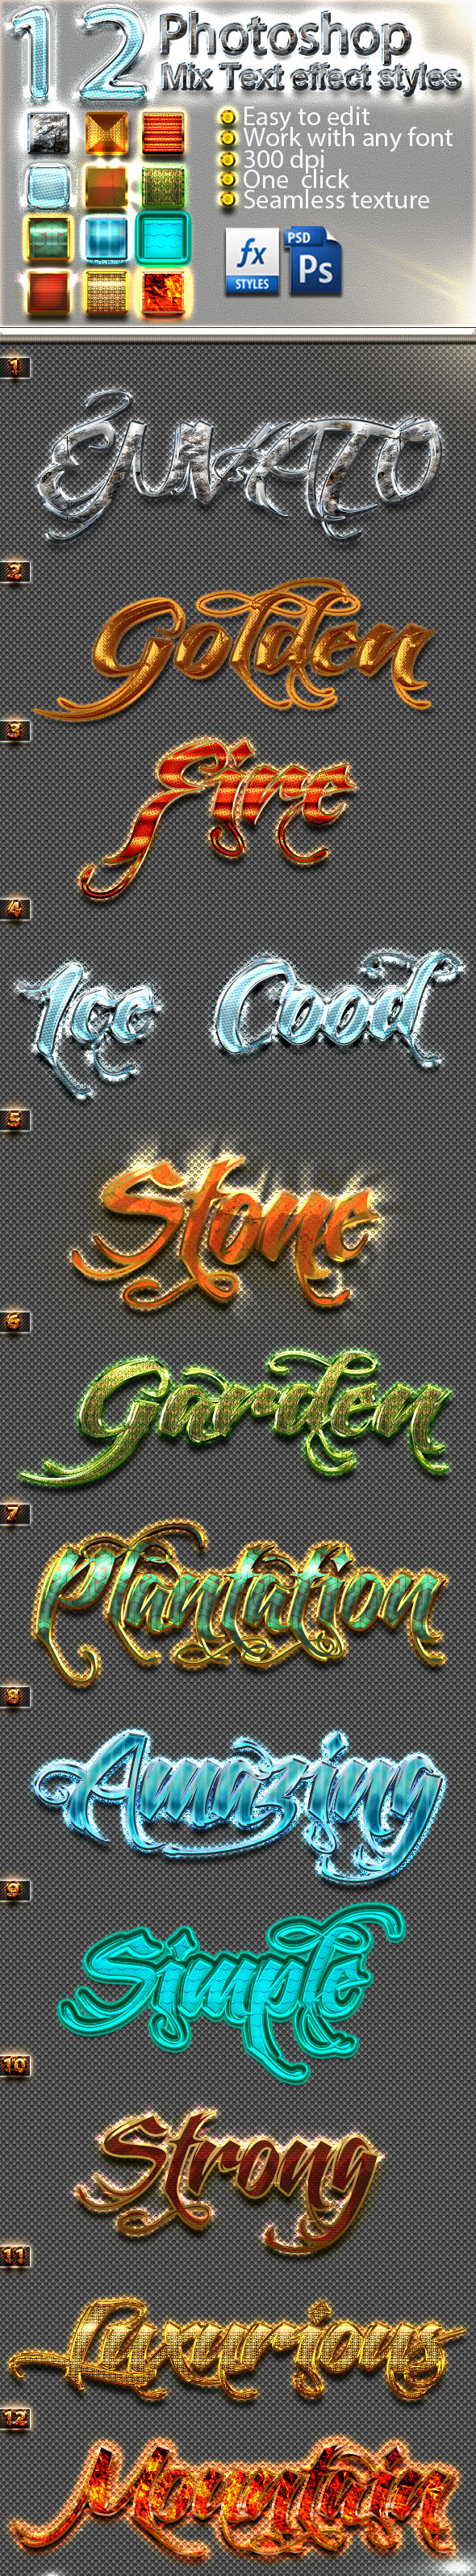 12 Photoshop Mix Text Effect Styles Vol 33 - Text Effects Styles